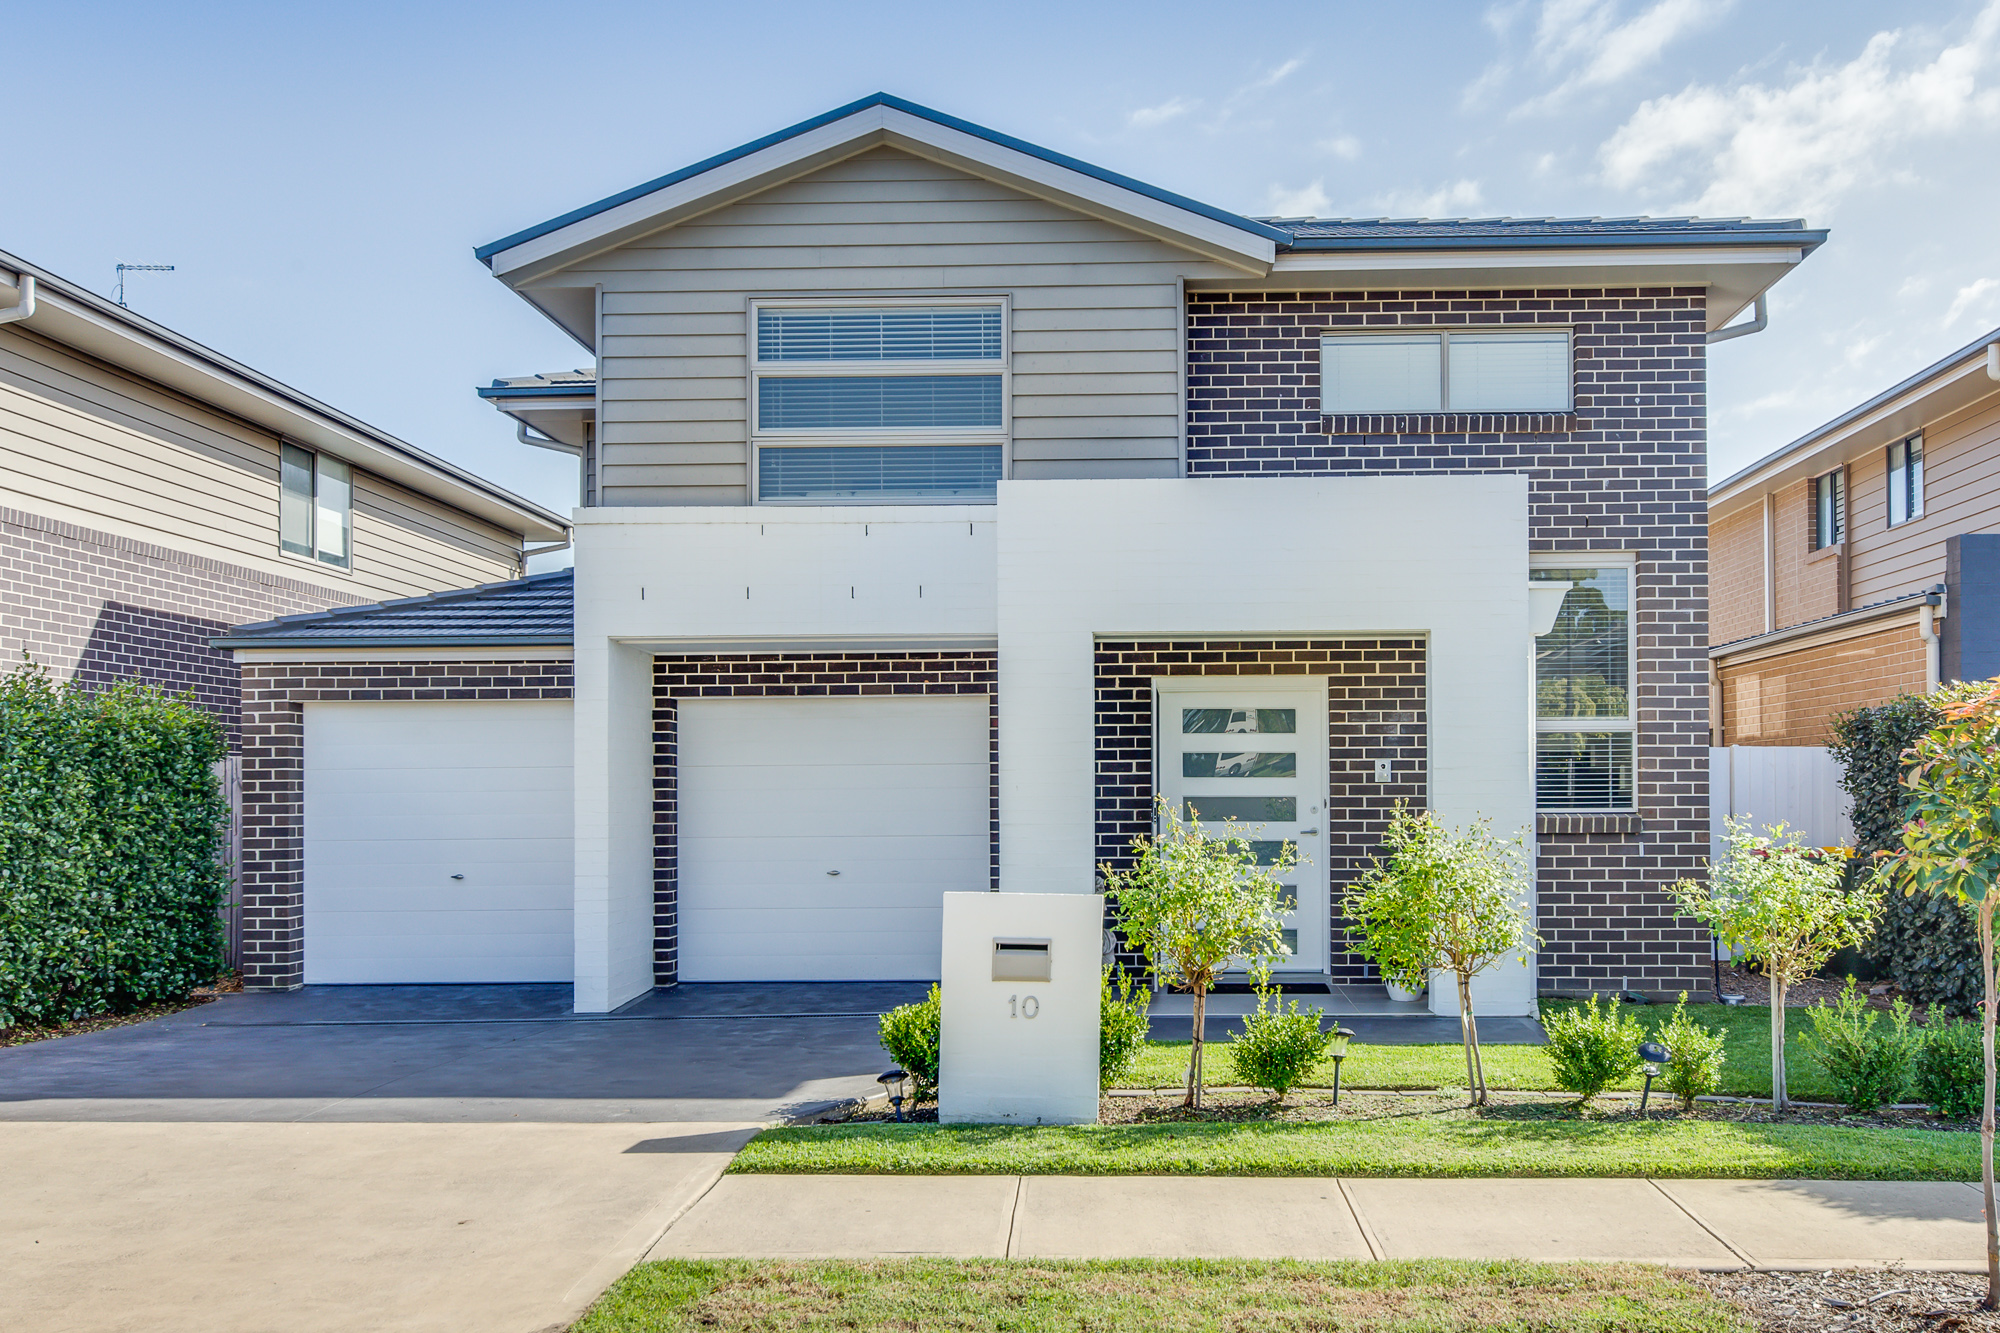 4 Rooms, House, Leased, Eumina , 2 Bathrooms, Listing ID 1458, The Ponds, NSW, Australia, 2769,